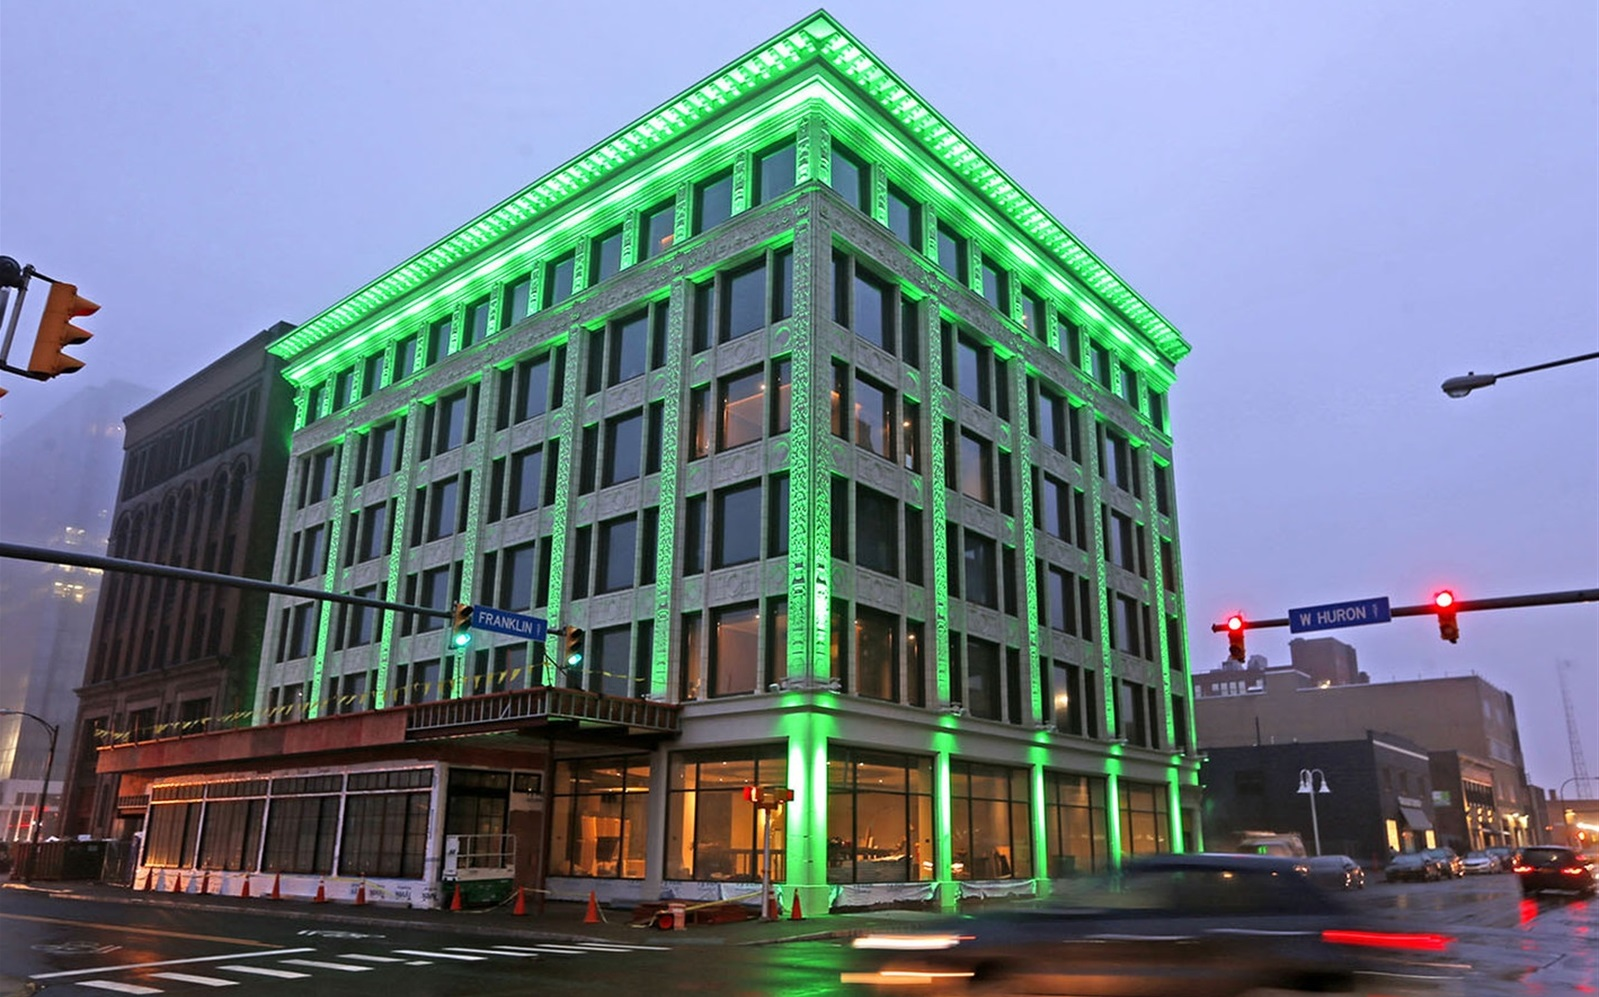 Leisure and hospitality employment has barely increased, despite a wave of new hotel openings, including the Curtiss Hotel in downtown Buffalo. (Robert Kirkham/Buffalo News file photo)